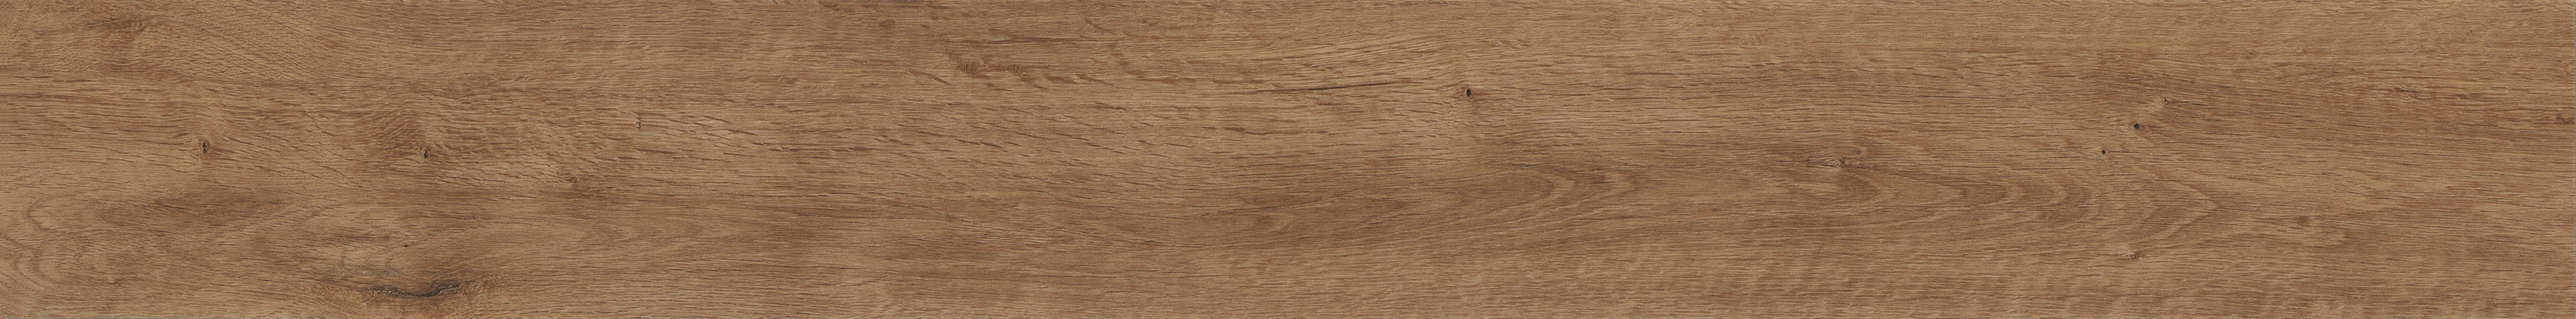 Expona Commercial Wood Pur